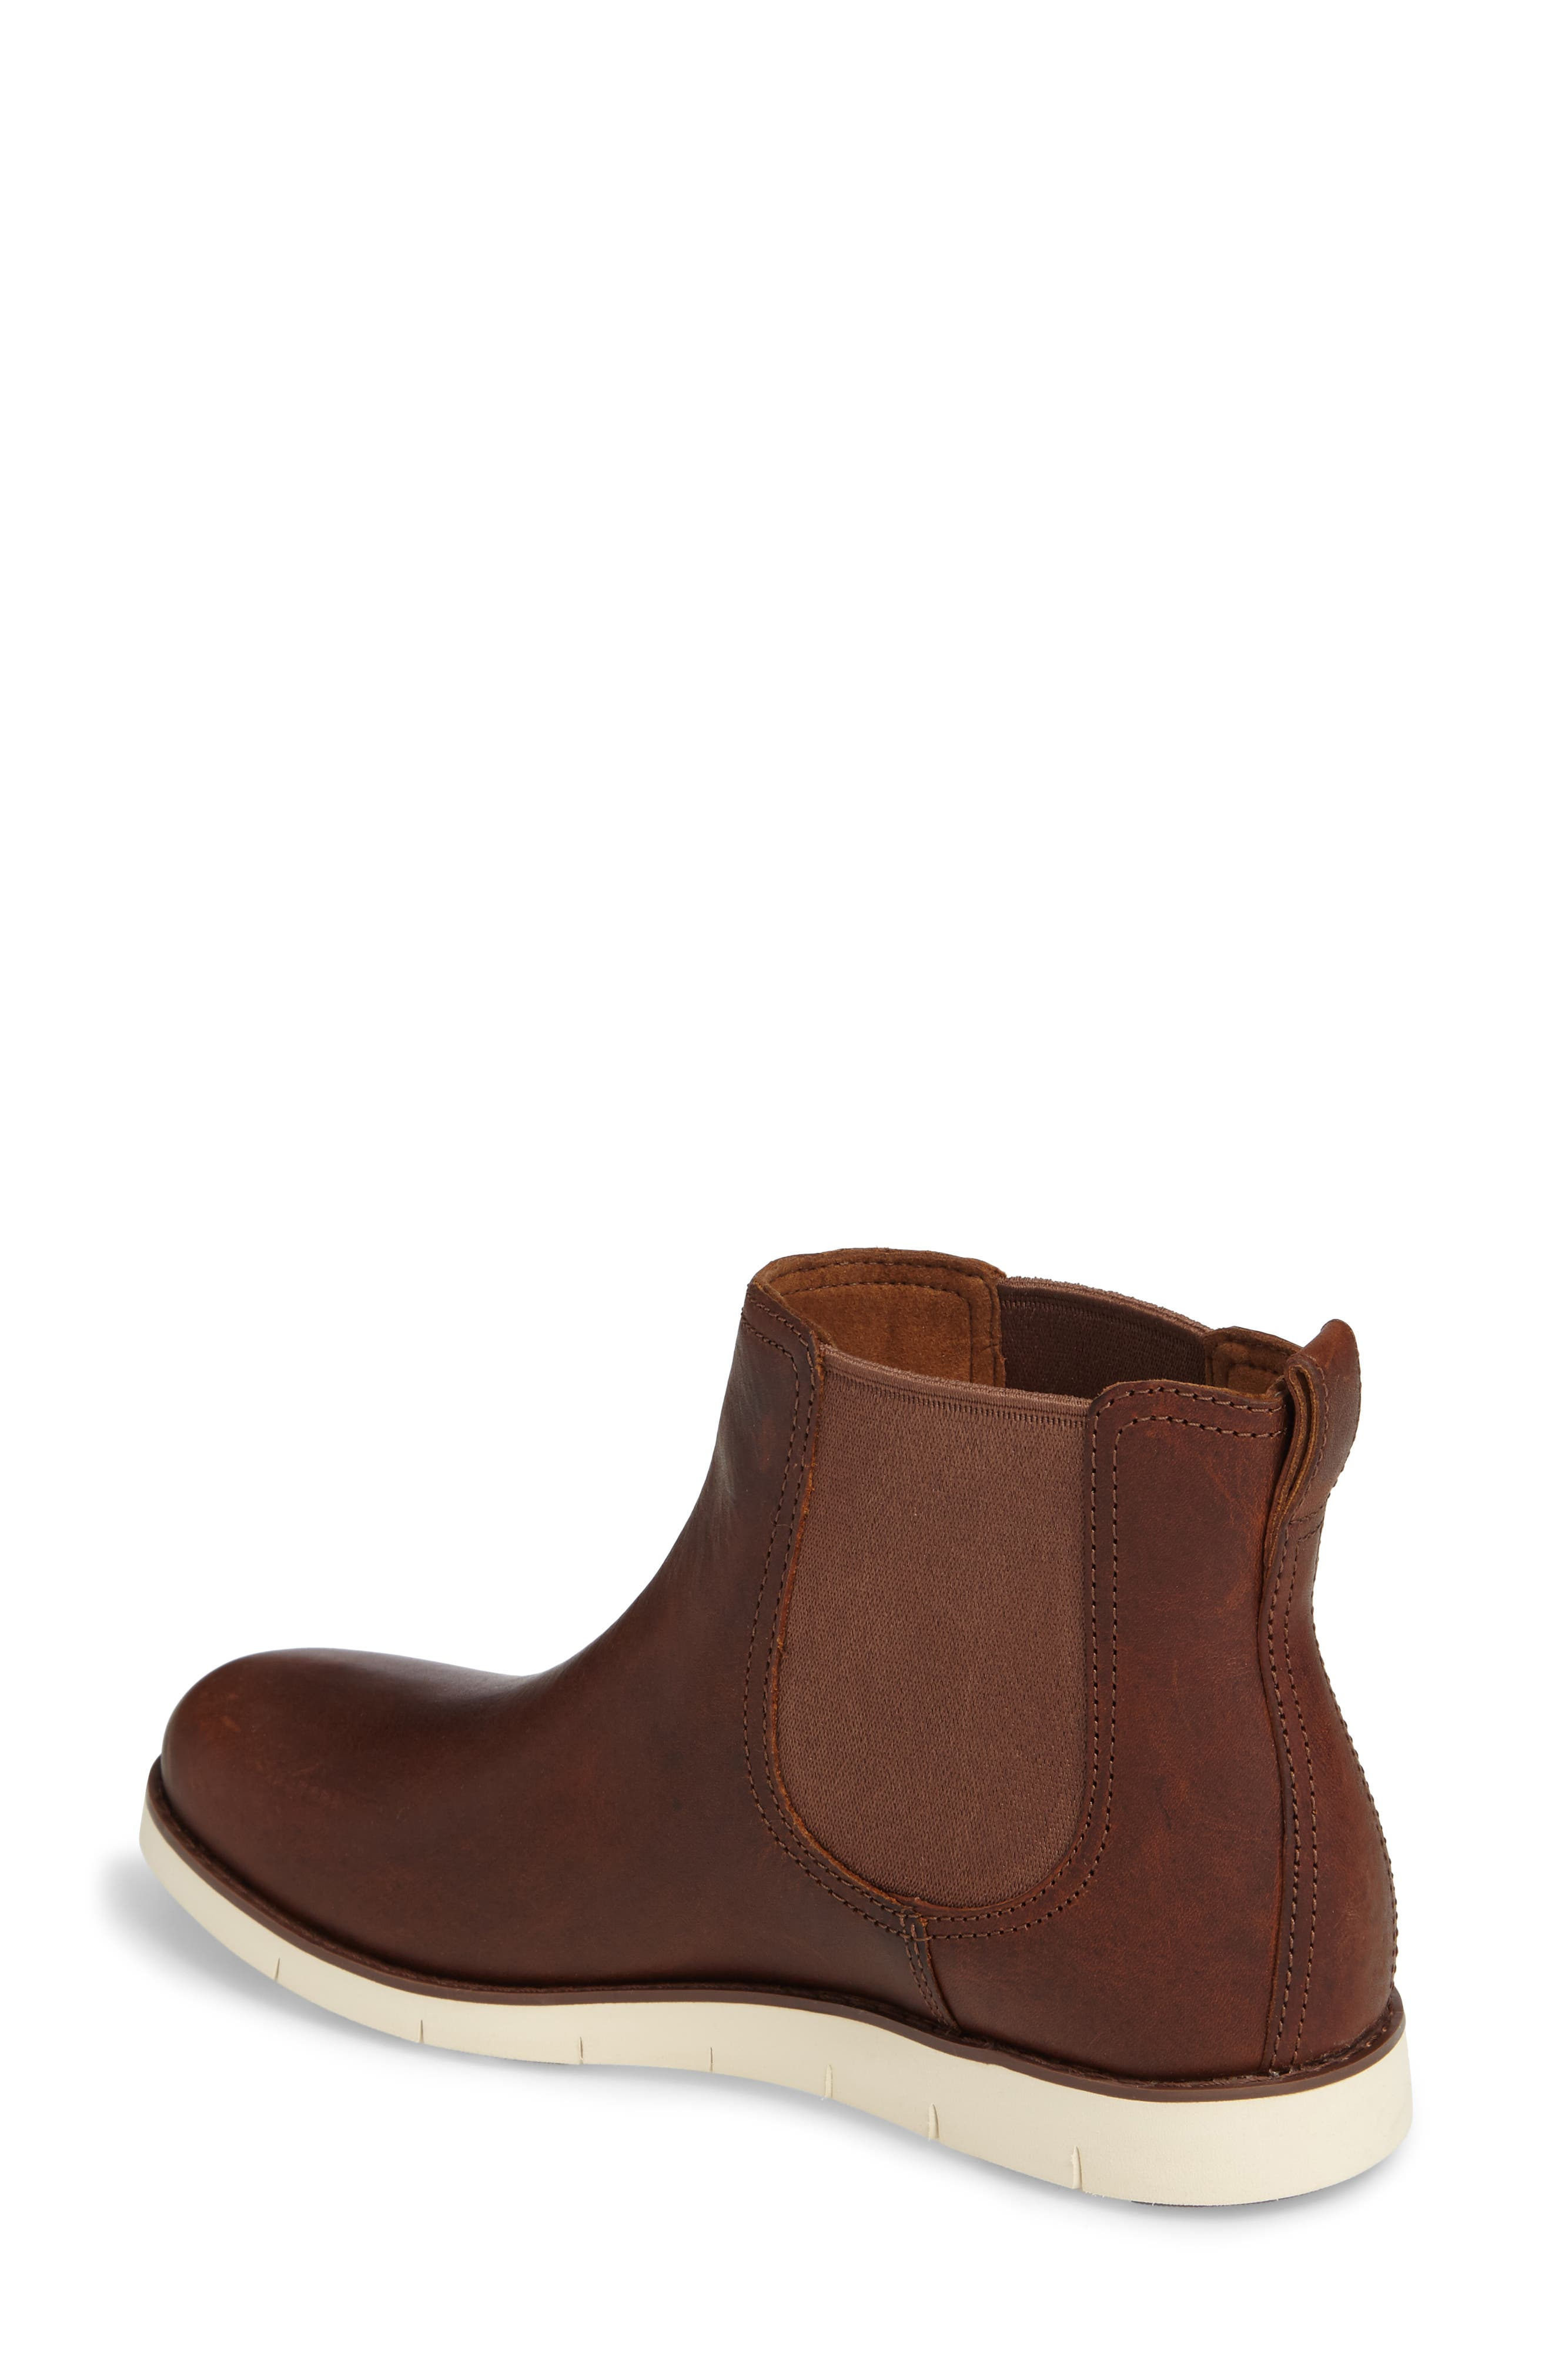 Lakeville Chelsea Boot,                             Alternate thumbnail 2, color,                             Medium Brown Leather